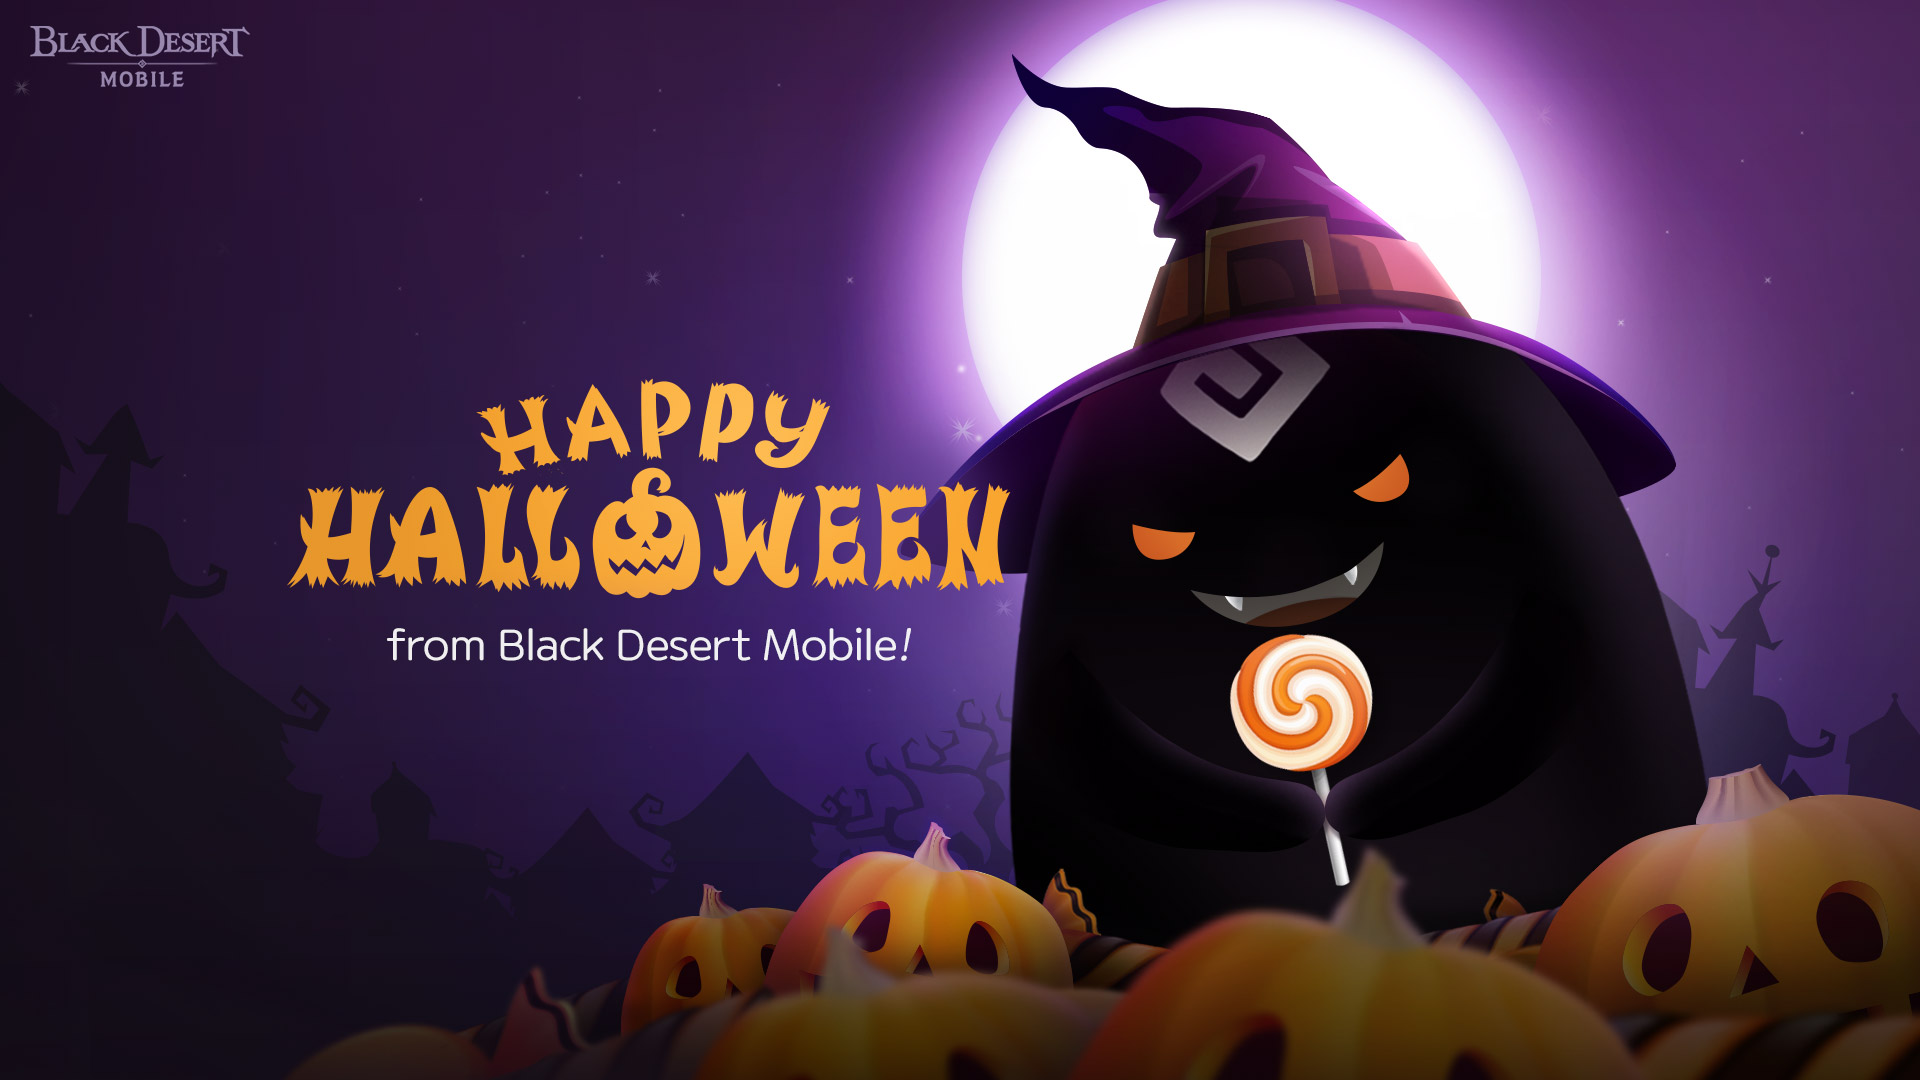 photo of 'Black Desert Mobile' Celebrates Halloween with Today's Update Bringing in the Cron Castle Area, Ancient Ruins… image